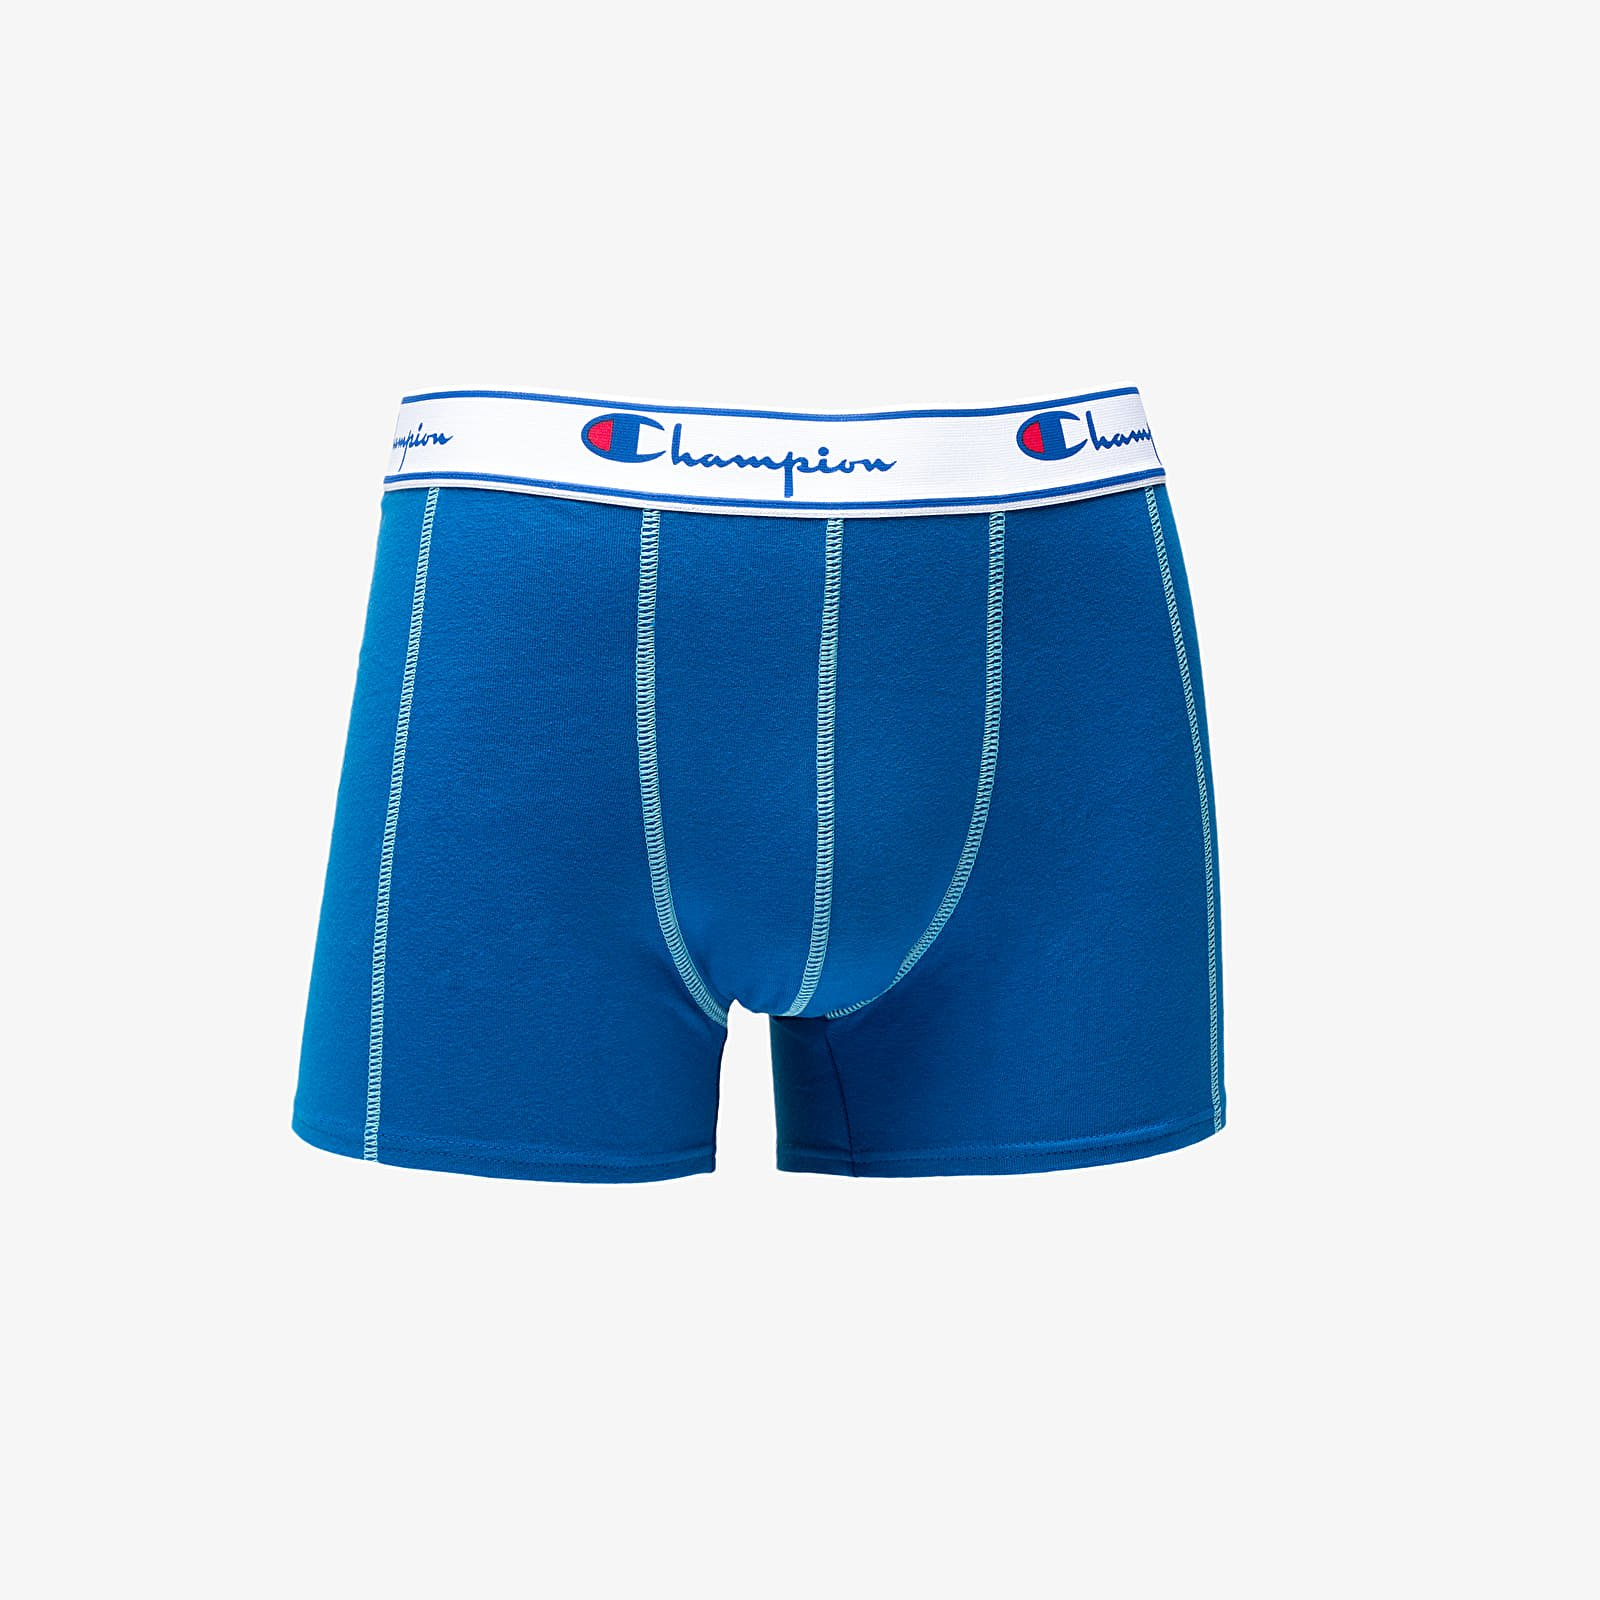 Männerunterwäsche Champion 2 Pack Boxer Blue/ Grey